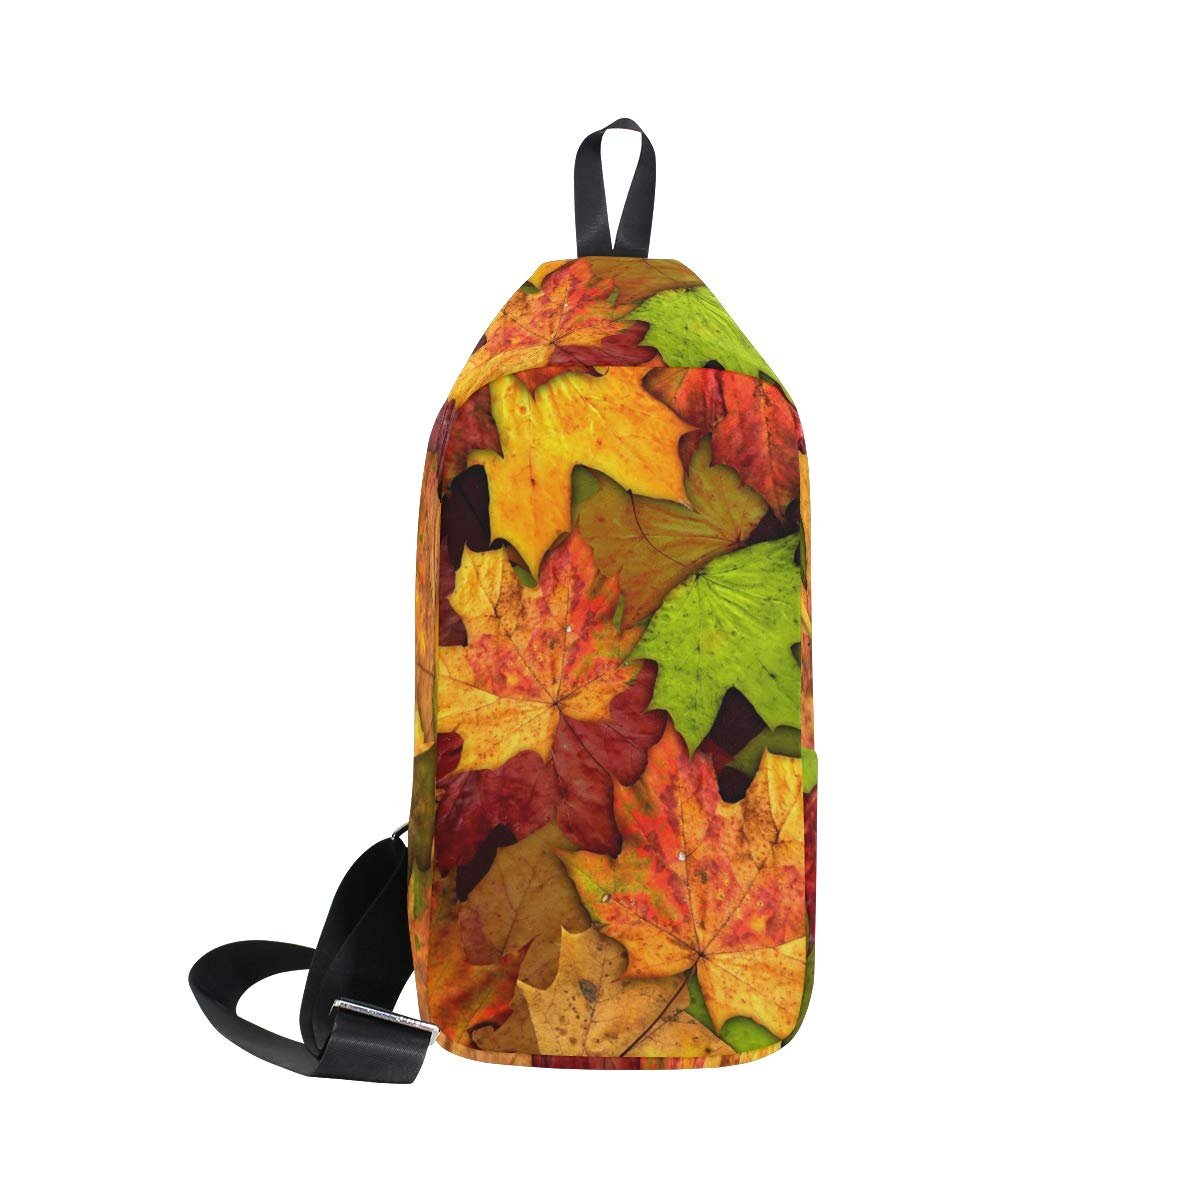 TFONE Autumn Fall Maple Leaf Crossbody Bag Lightweight Chest Shoulder Messenger Pack Backpack Sling Bag